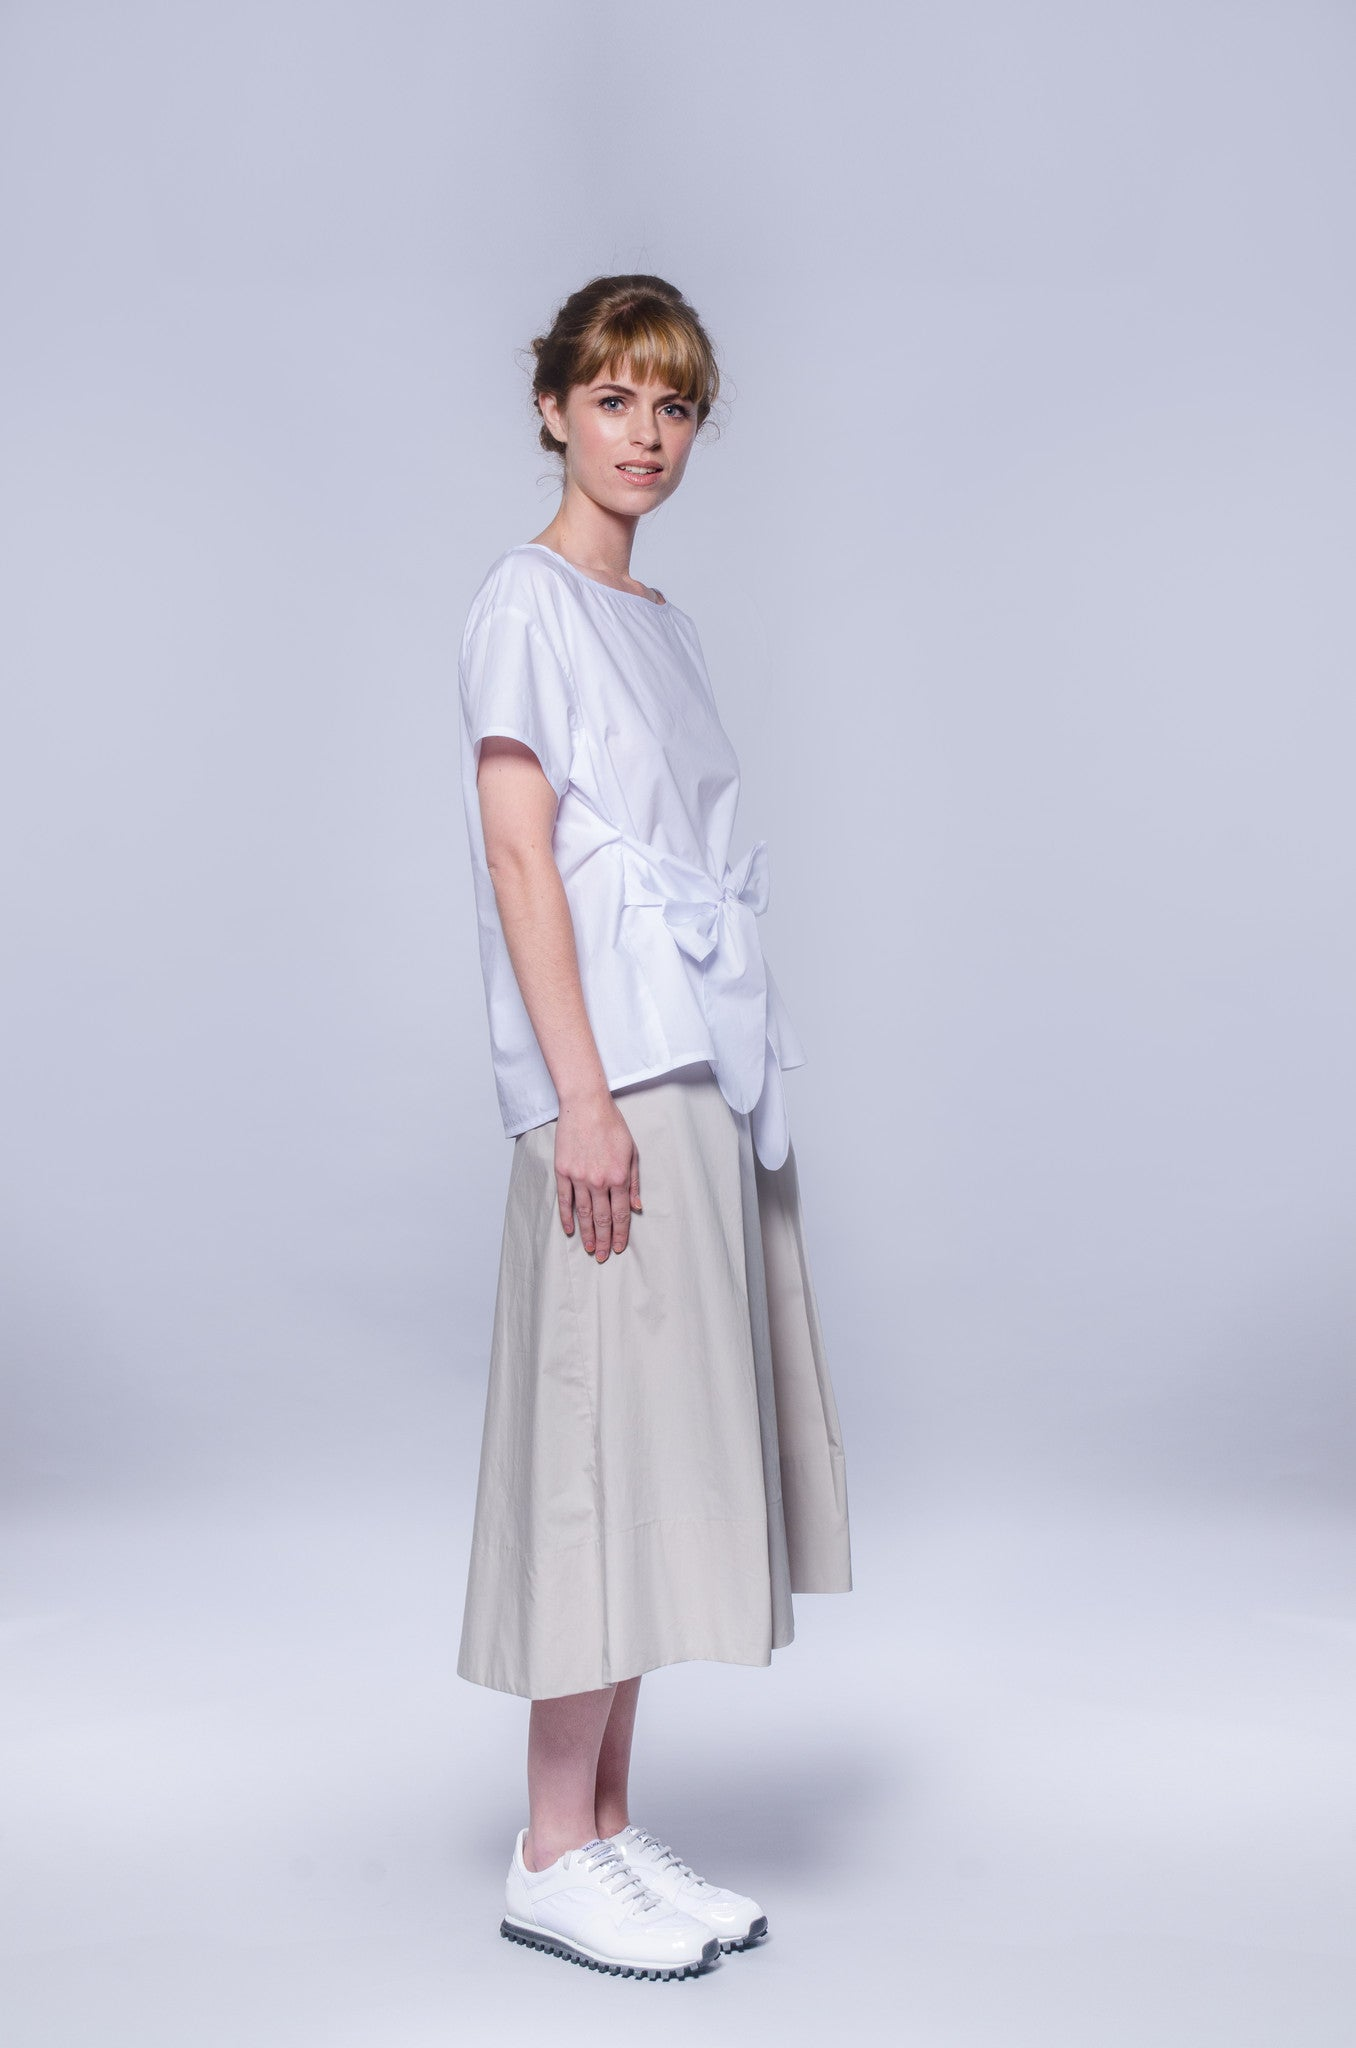 Susie Q Skirt - Cotton Poplin